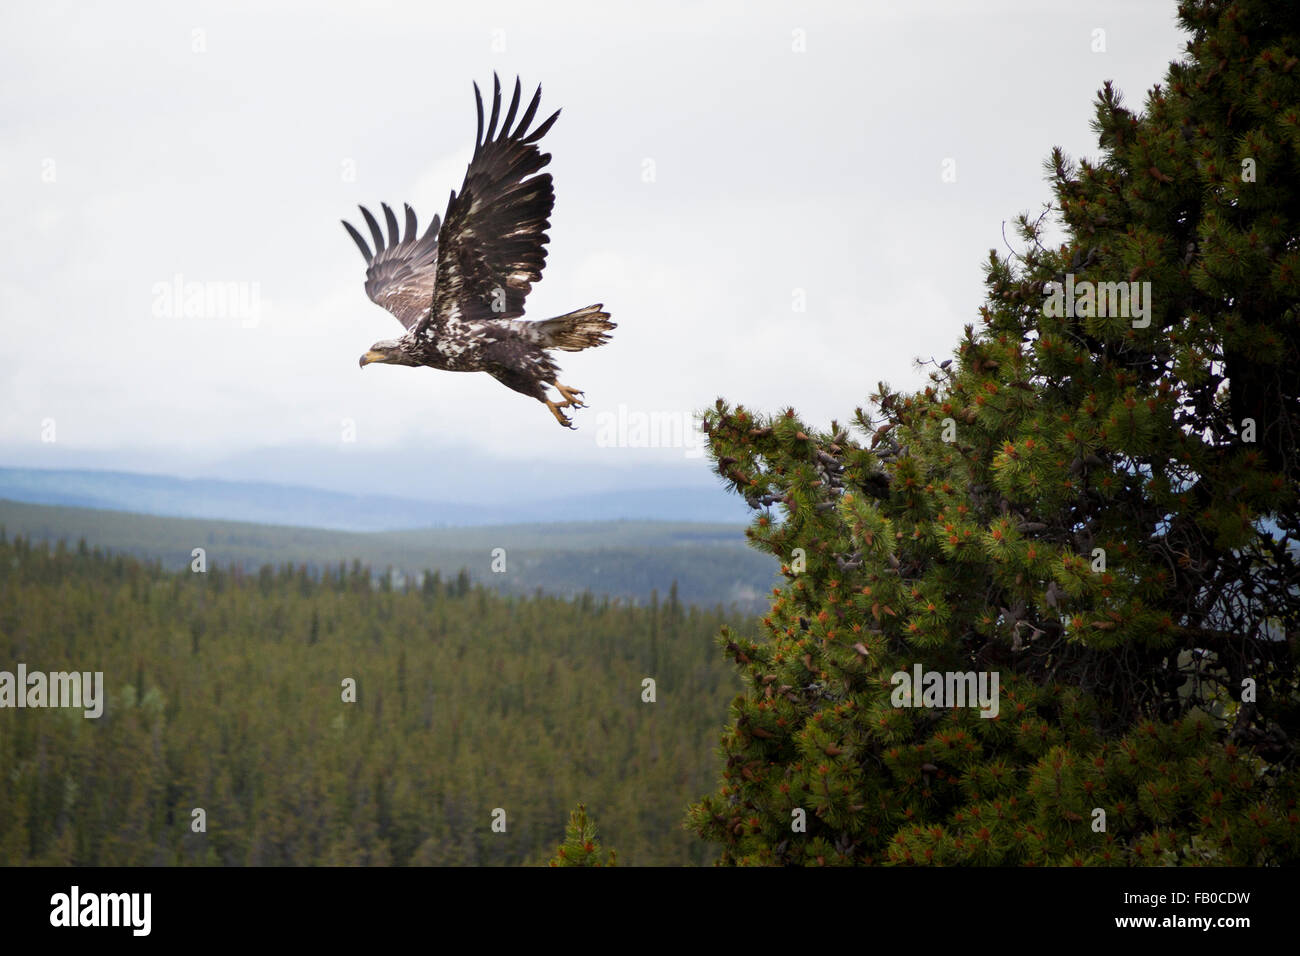 Eagle taking flight above the boreal forests of Canada's Yukon Territory - Stock Image